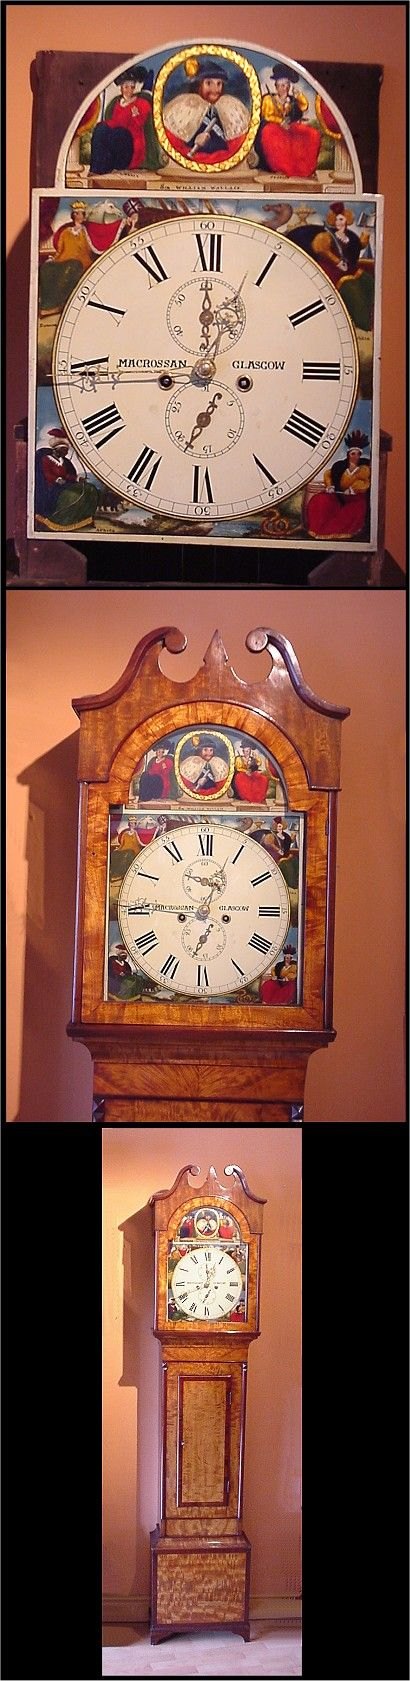 Antiques For Sale, UK Fairs Diary, Antique Shop/Dealer Directory and Antique  Furniture - 43 Best Antique Longcase / Grandfather Clocks Images On Pinterest